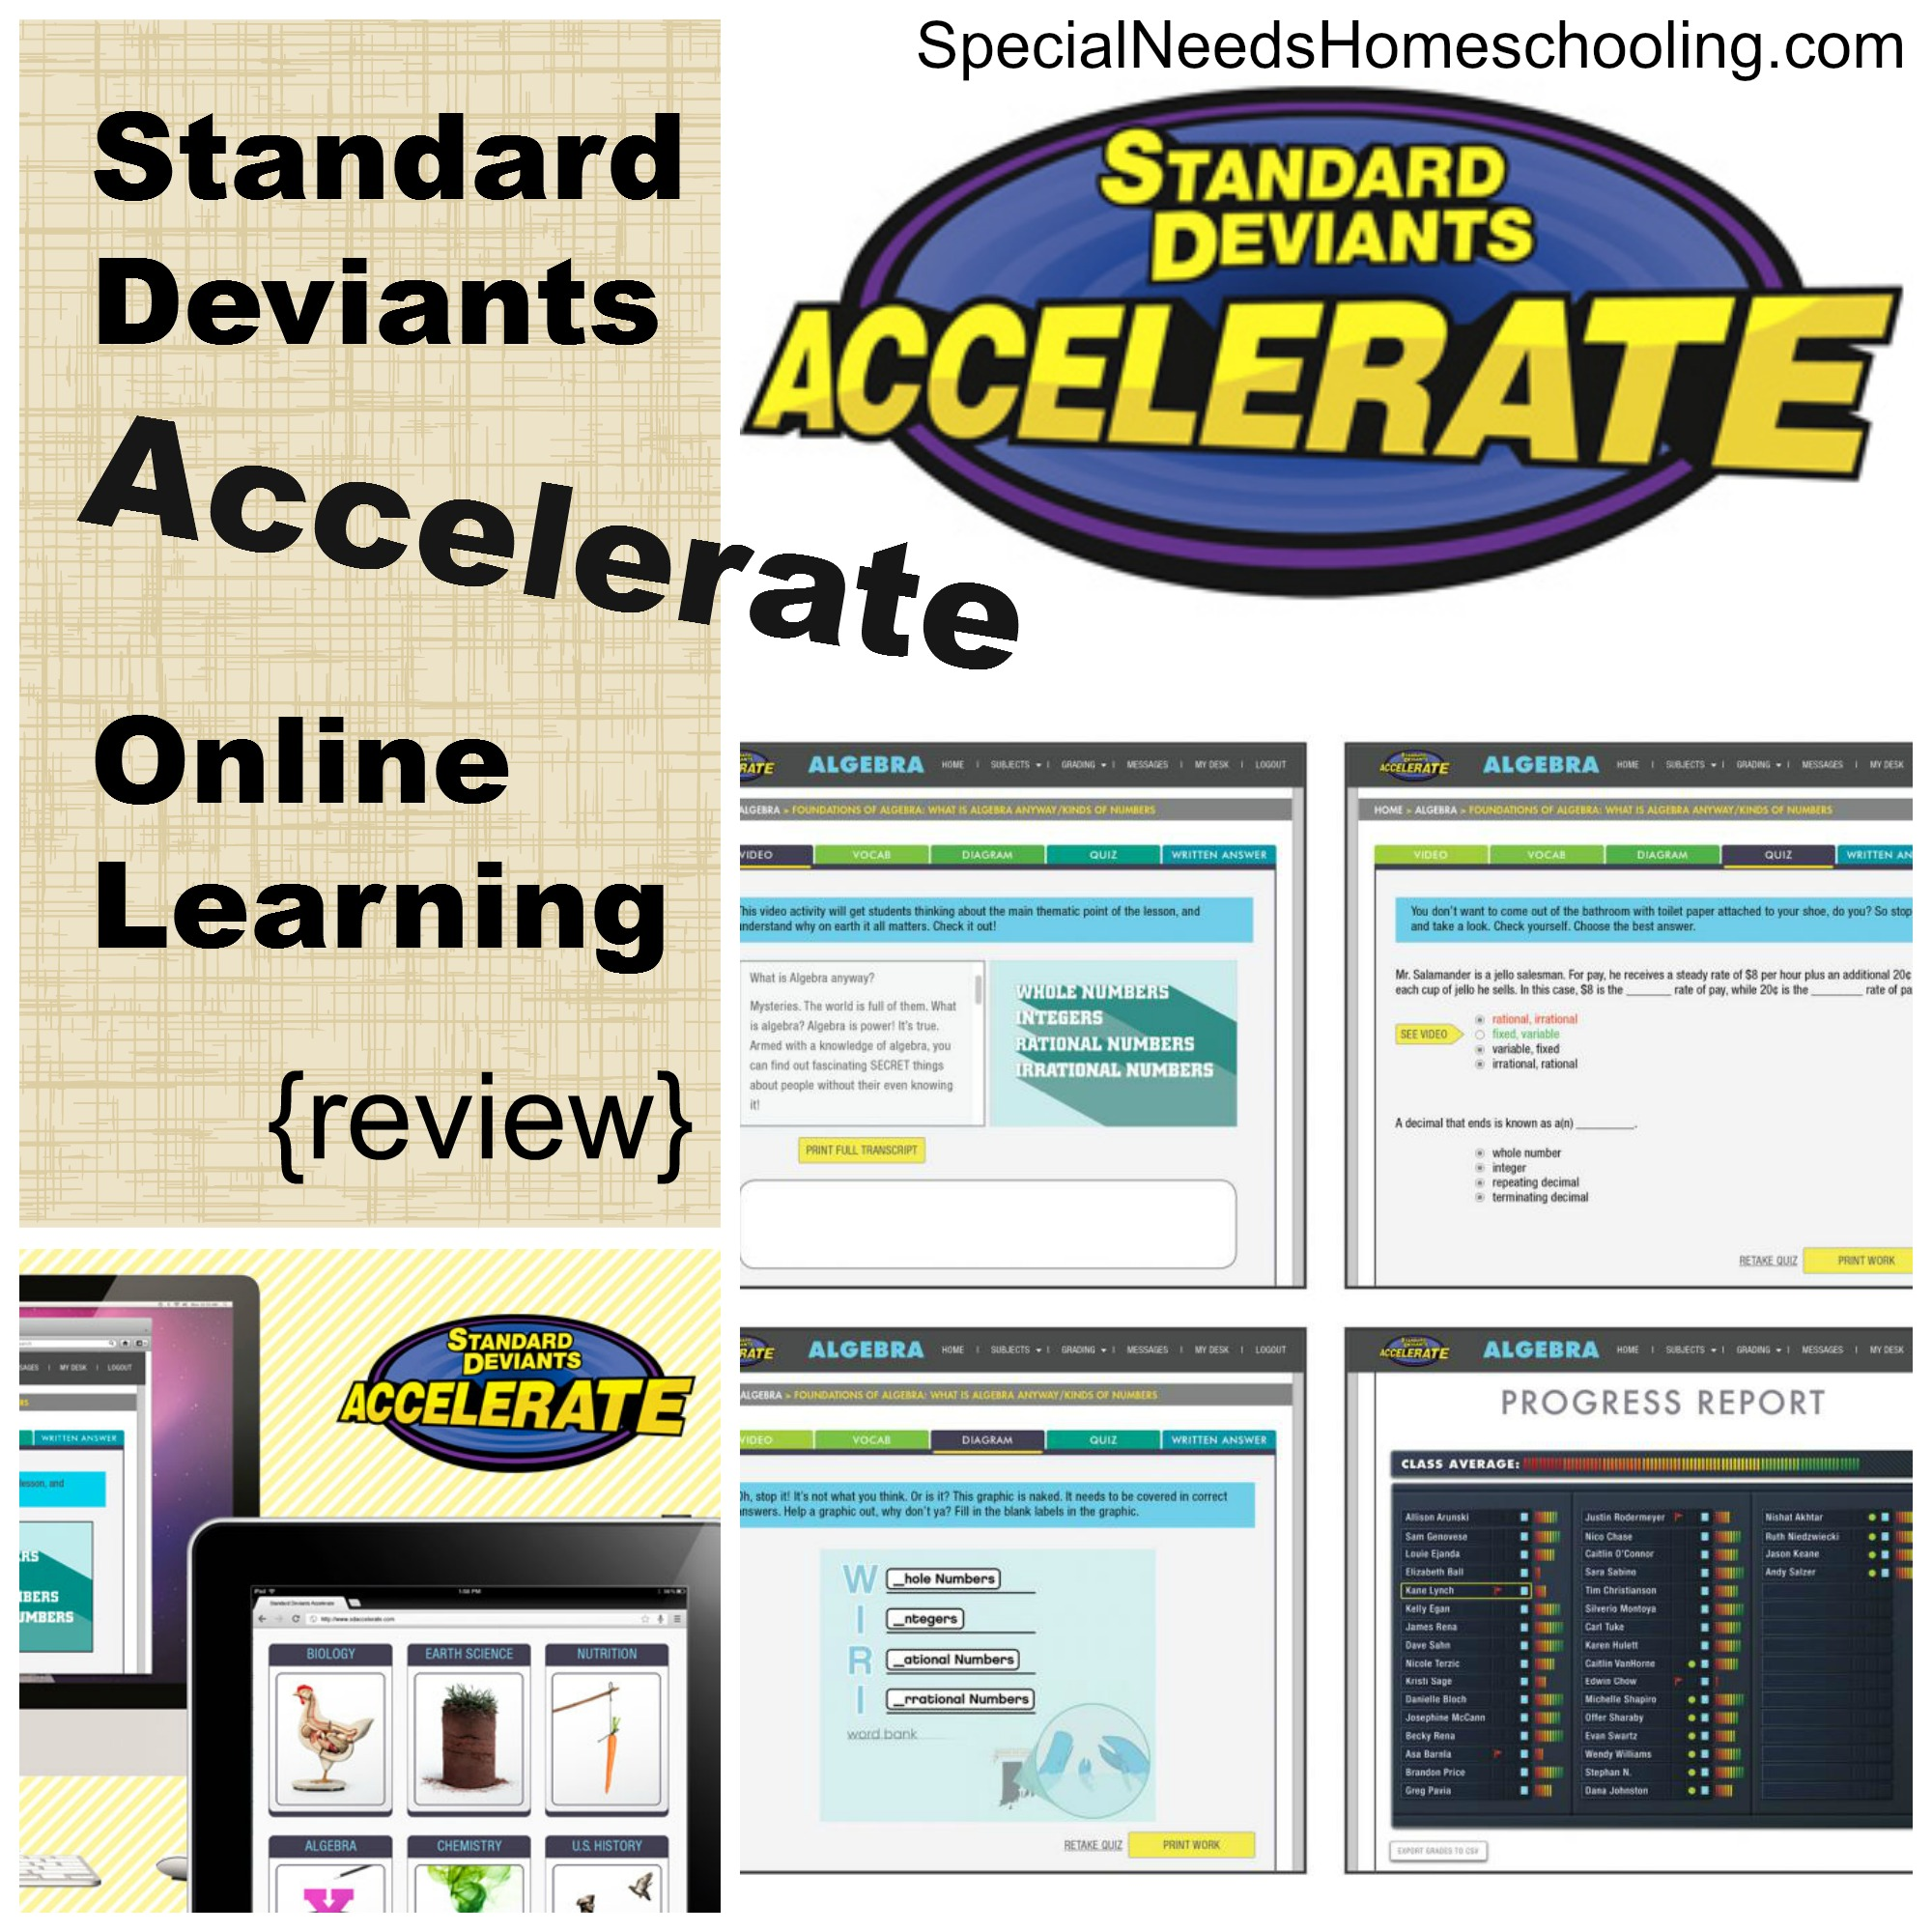 Standard Deviants Accelerate Online Learning {review